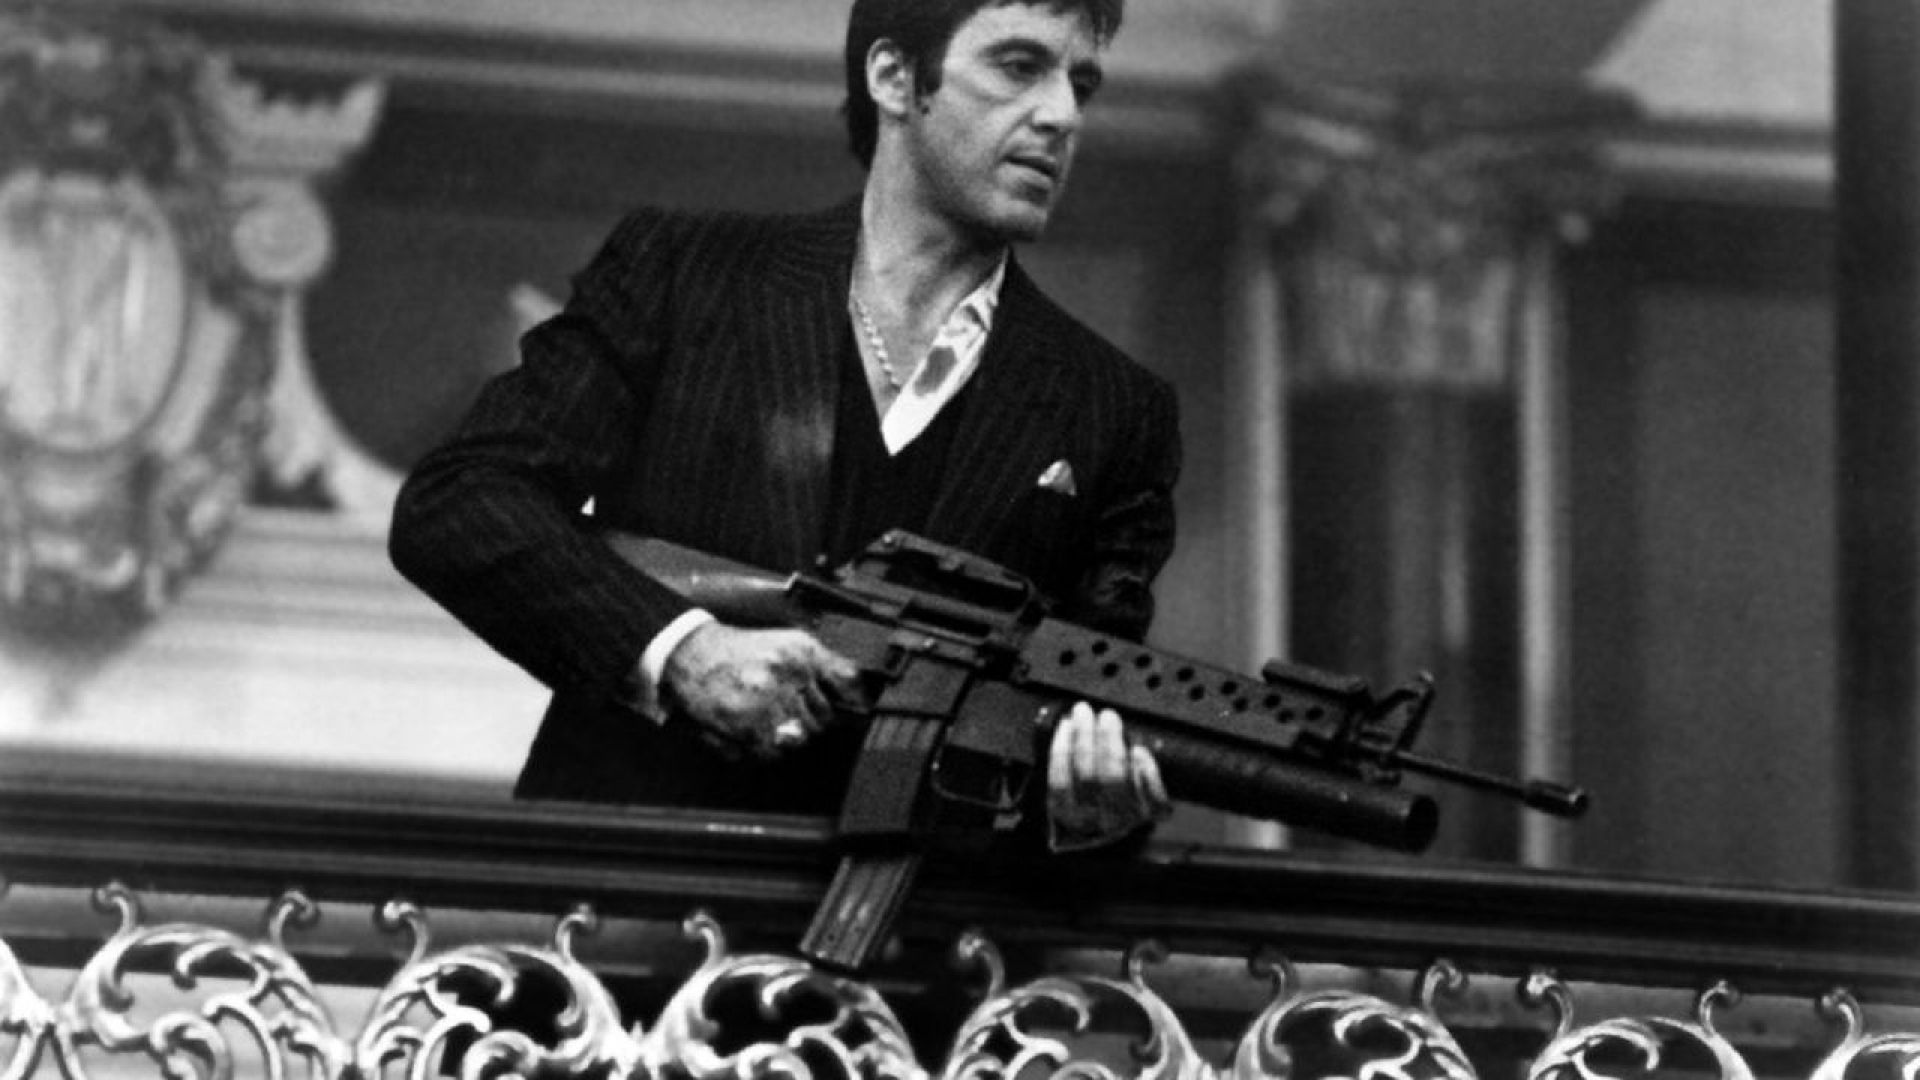 Scarface Wallpaper For Bedroom Top Scarface Picture In High Quality Goldwallpapers